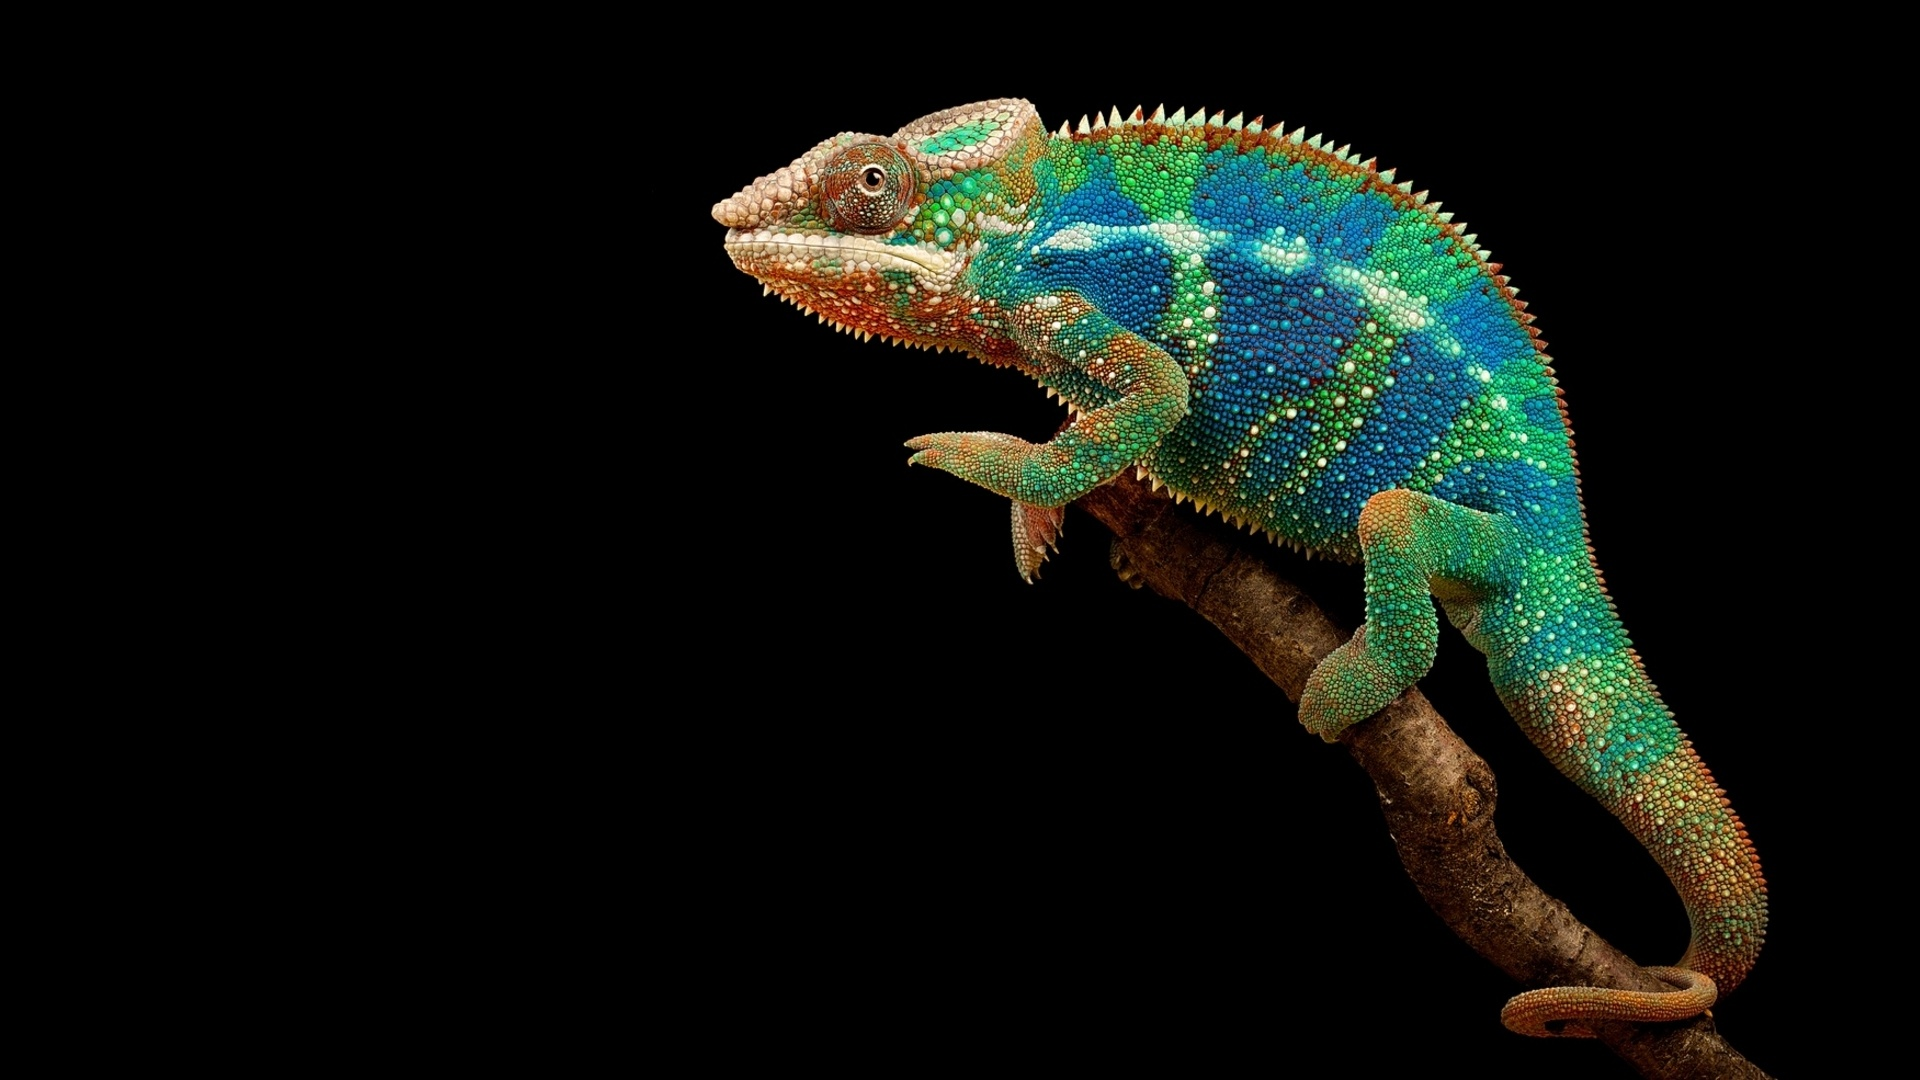 chameleon wallpaper 1920x1200 - photo #28